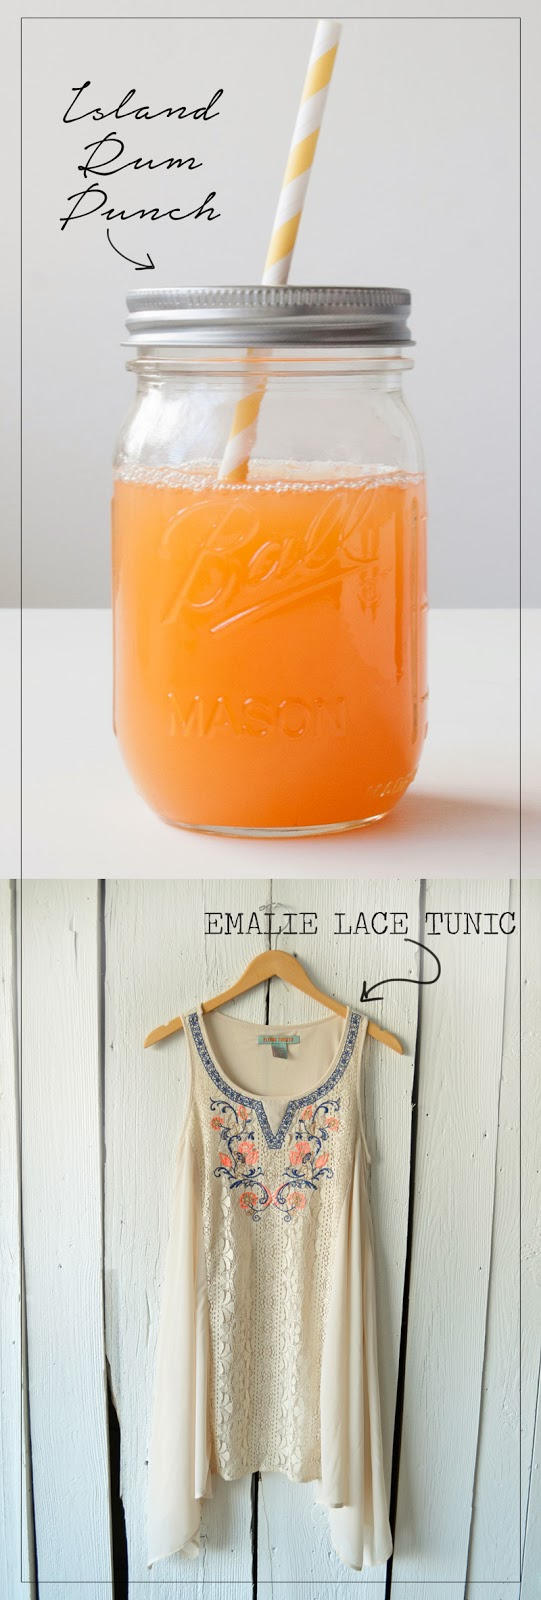 Island Rum Punch via illistyle.com